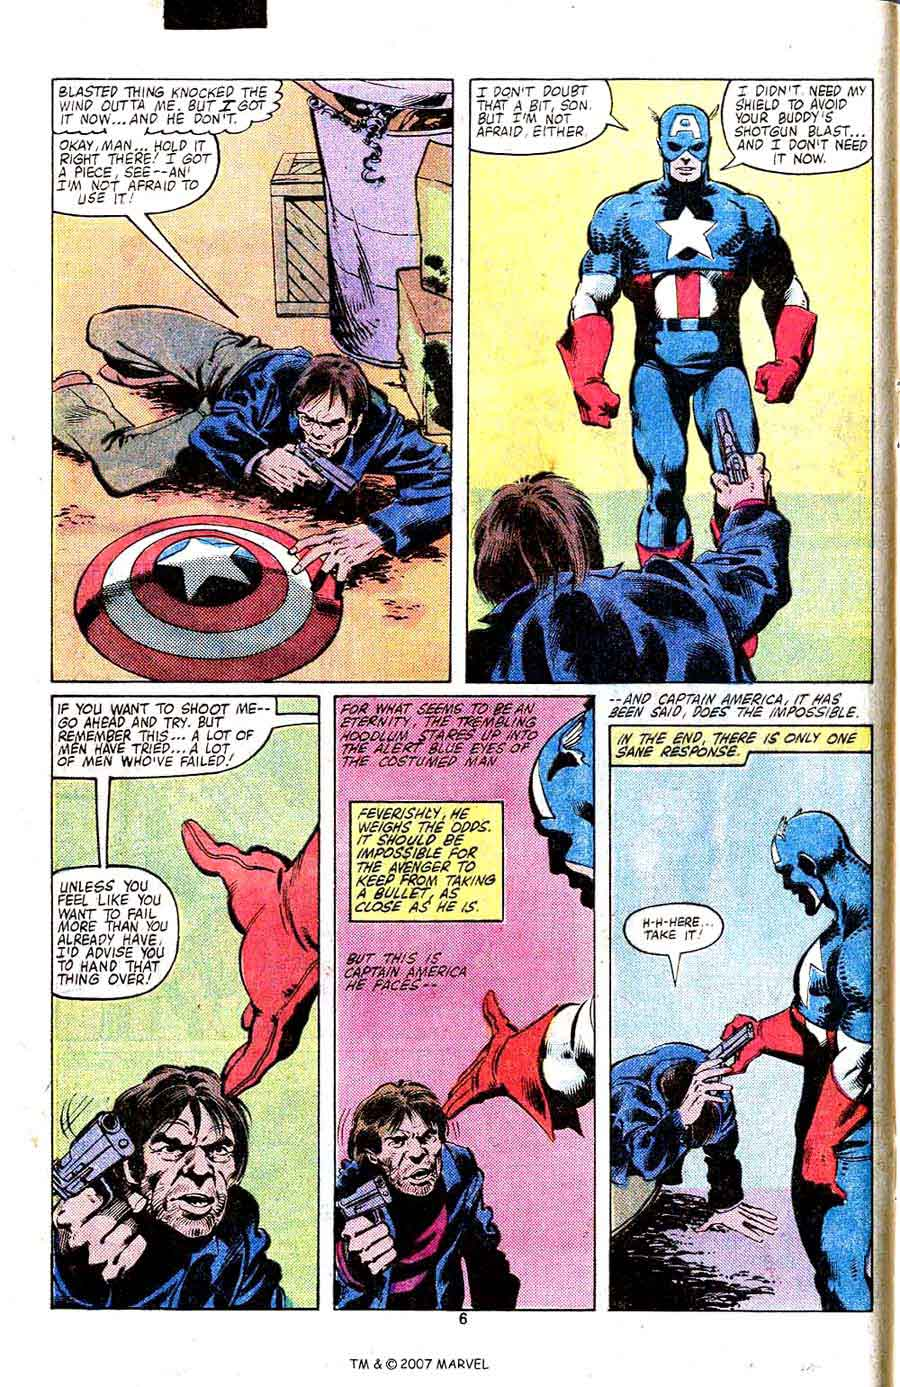 Captain America #253 marvel 1980s bronze age comic book page art by John Byrne